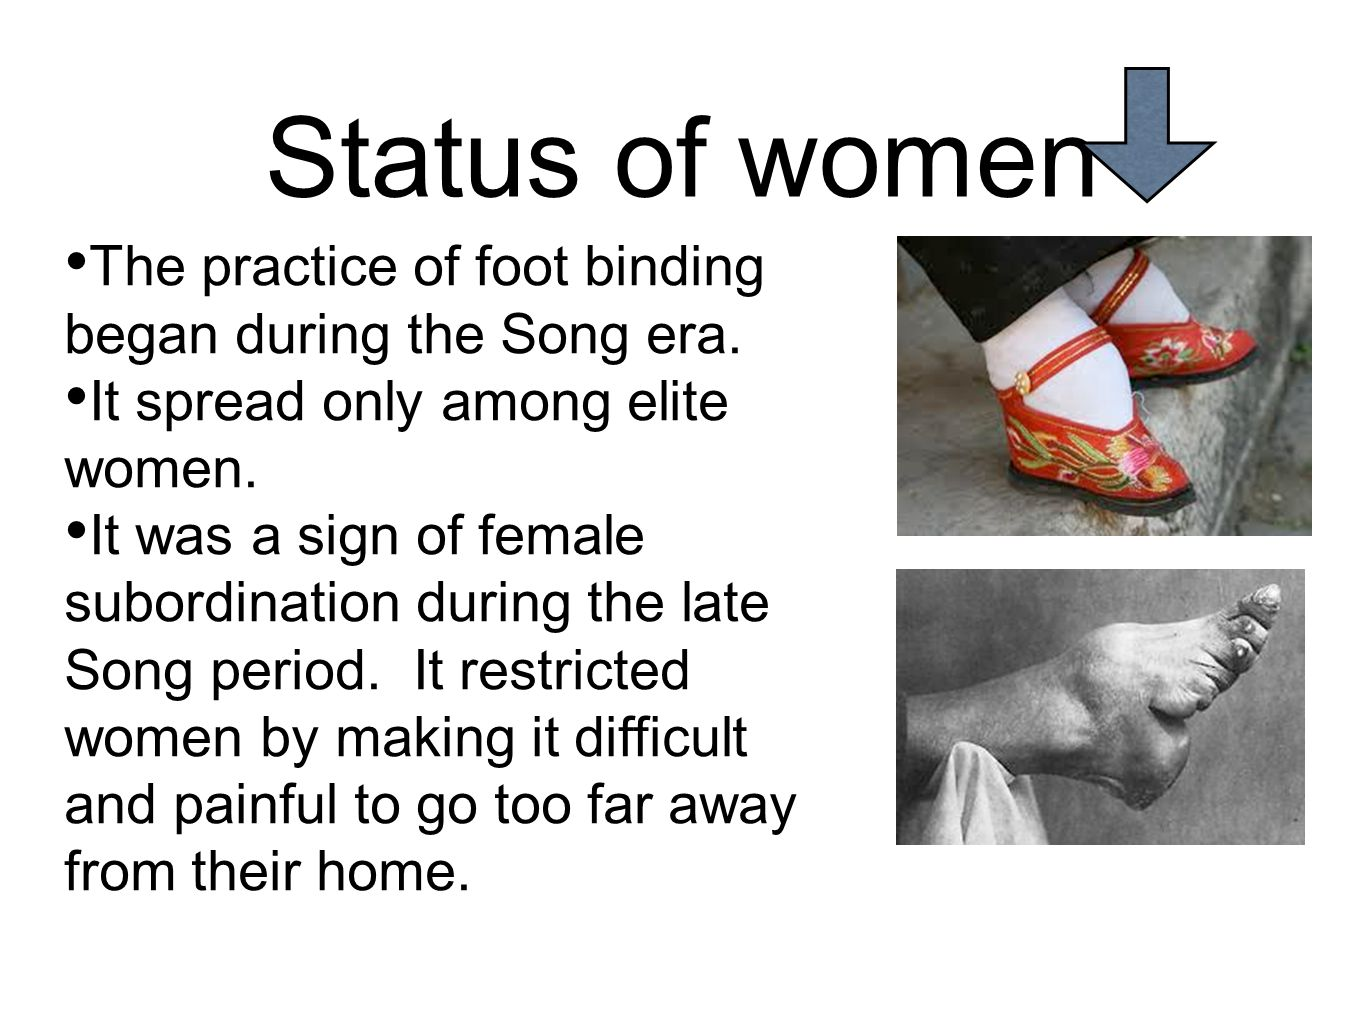 Status of women The practice of foot binding began during the Song era. It spread only among elite women. It was a sign of female subordination during